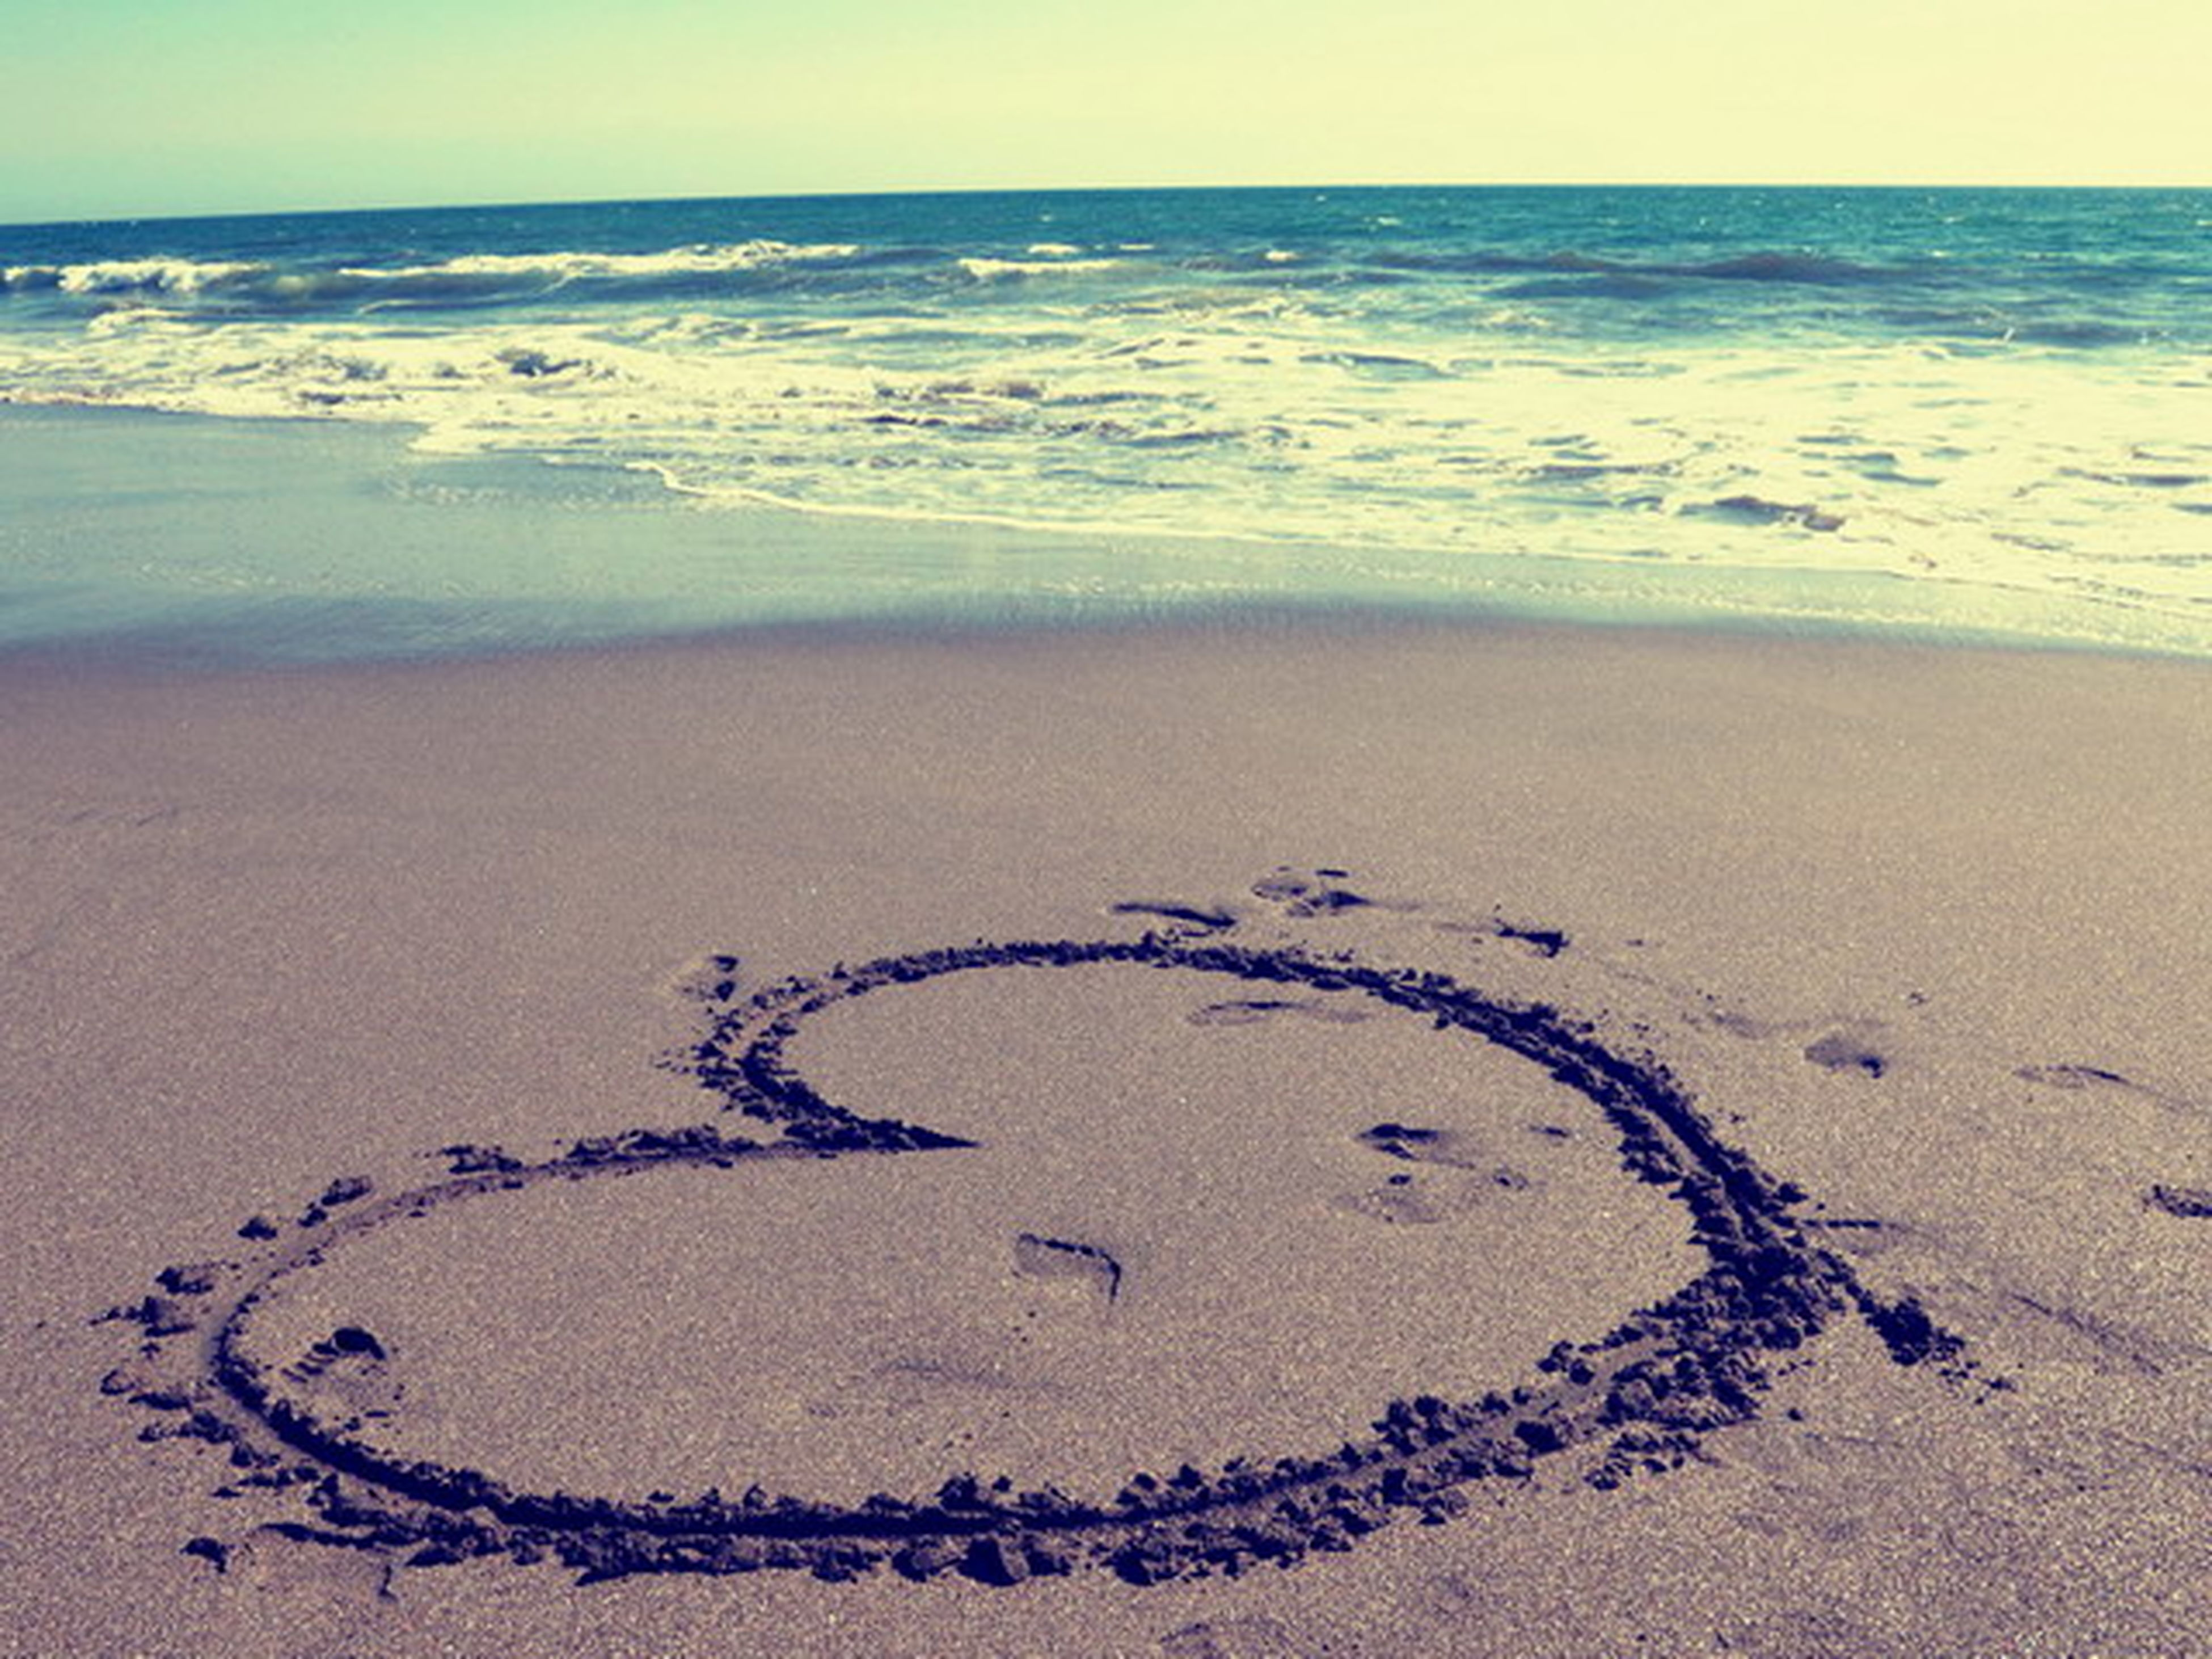 beach, sand, sea, shore, water, horizon over water, text, western script, communication, tranquility, footprint, tranquil scene, scenics, heart shape, wave, nature, surf, beauty in nature, creativity, love